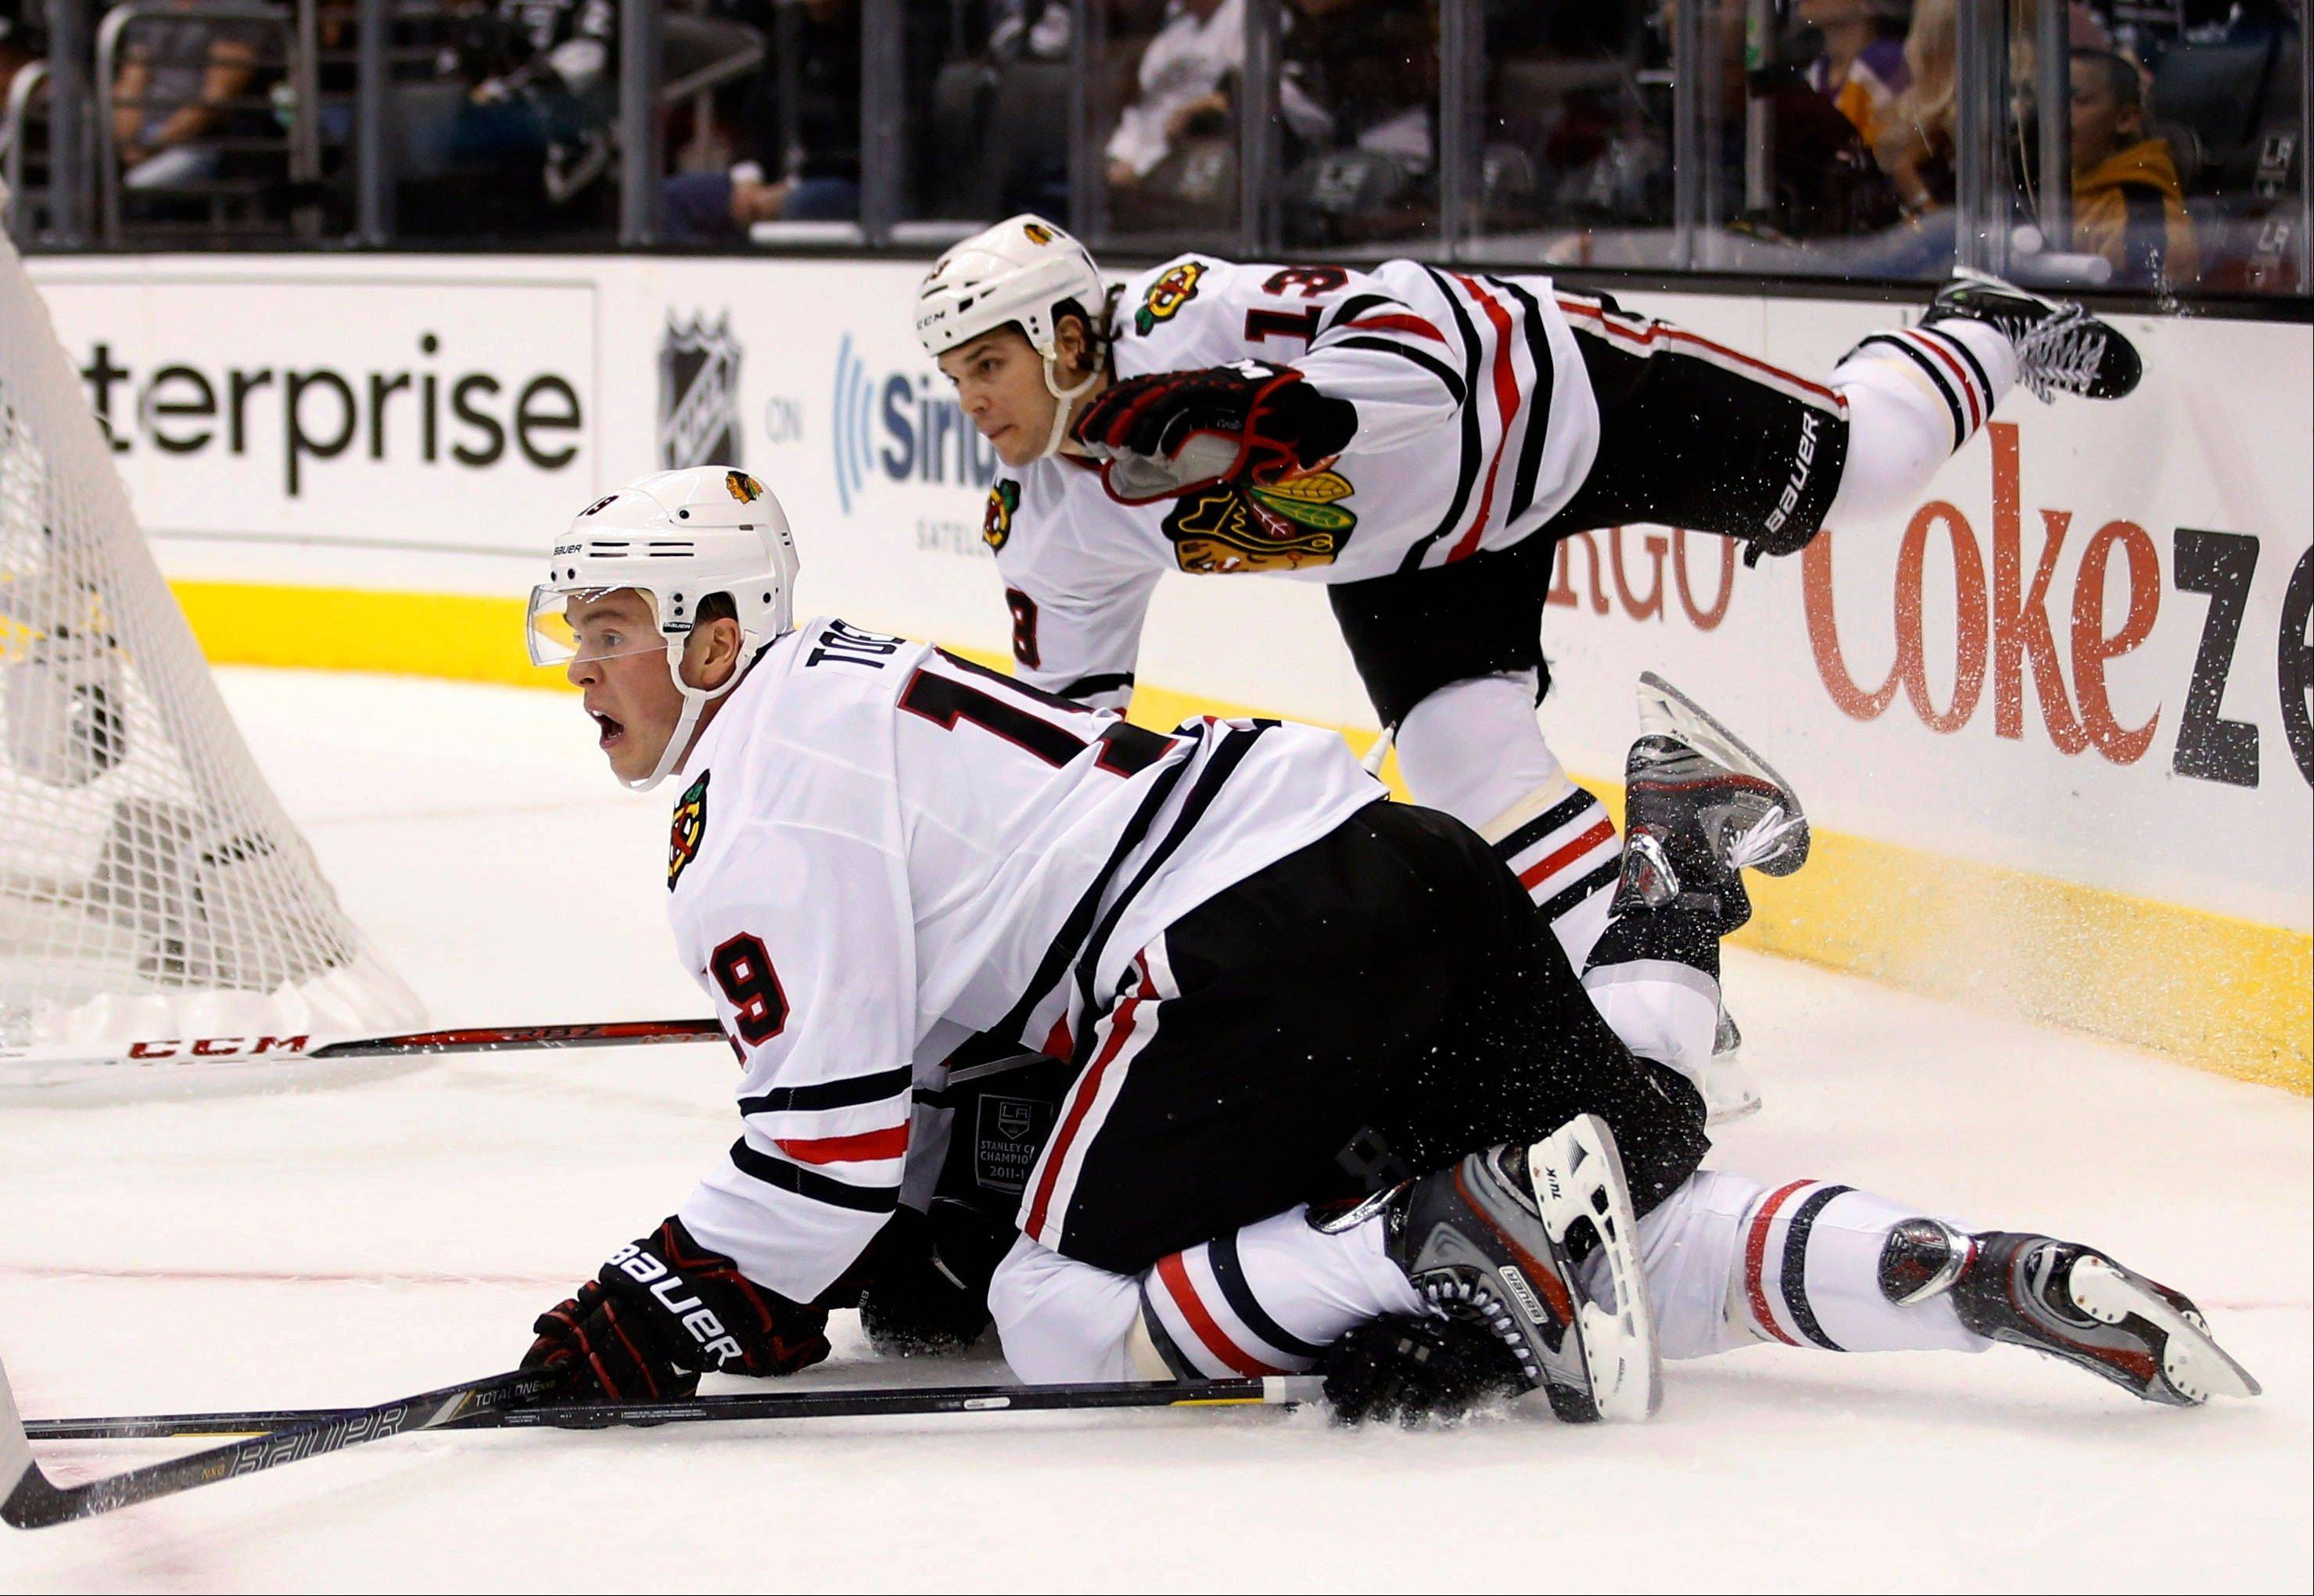 Los Angeles Kings' Drew Doughty is pinned by Chicago Blackhawks' Jonathan Toews (19) during the first period in Los Angeles. The Blackhawks' Daniel Carcillo is at rear.